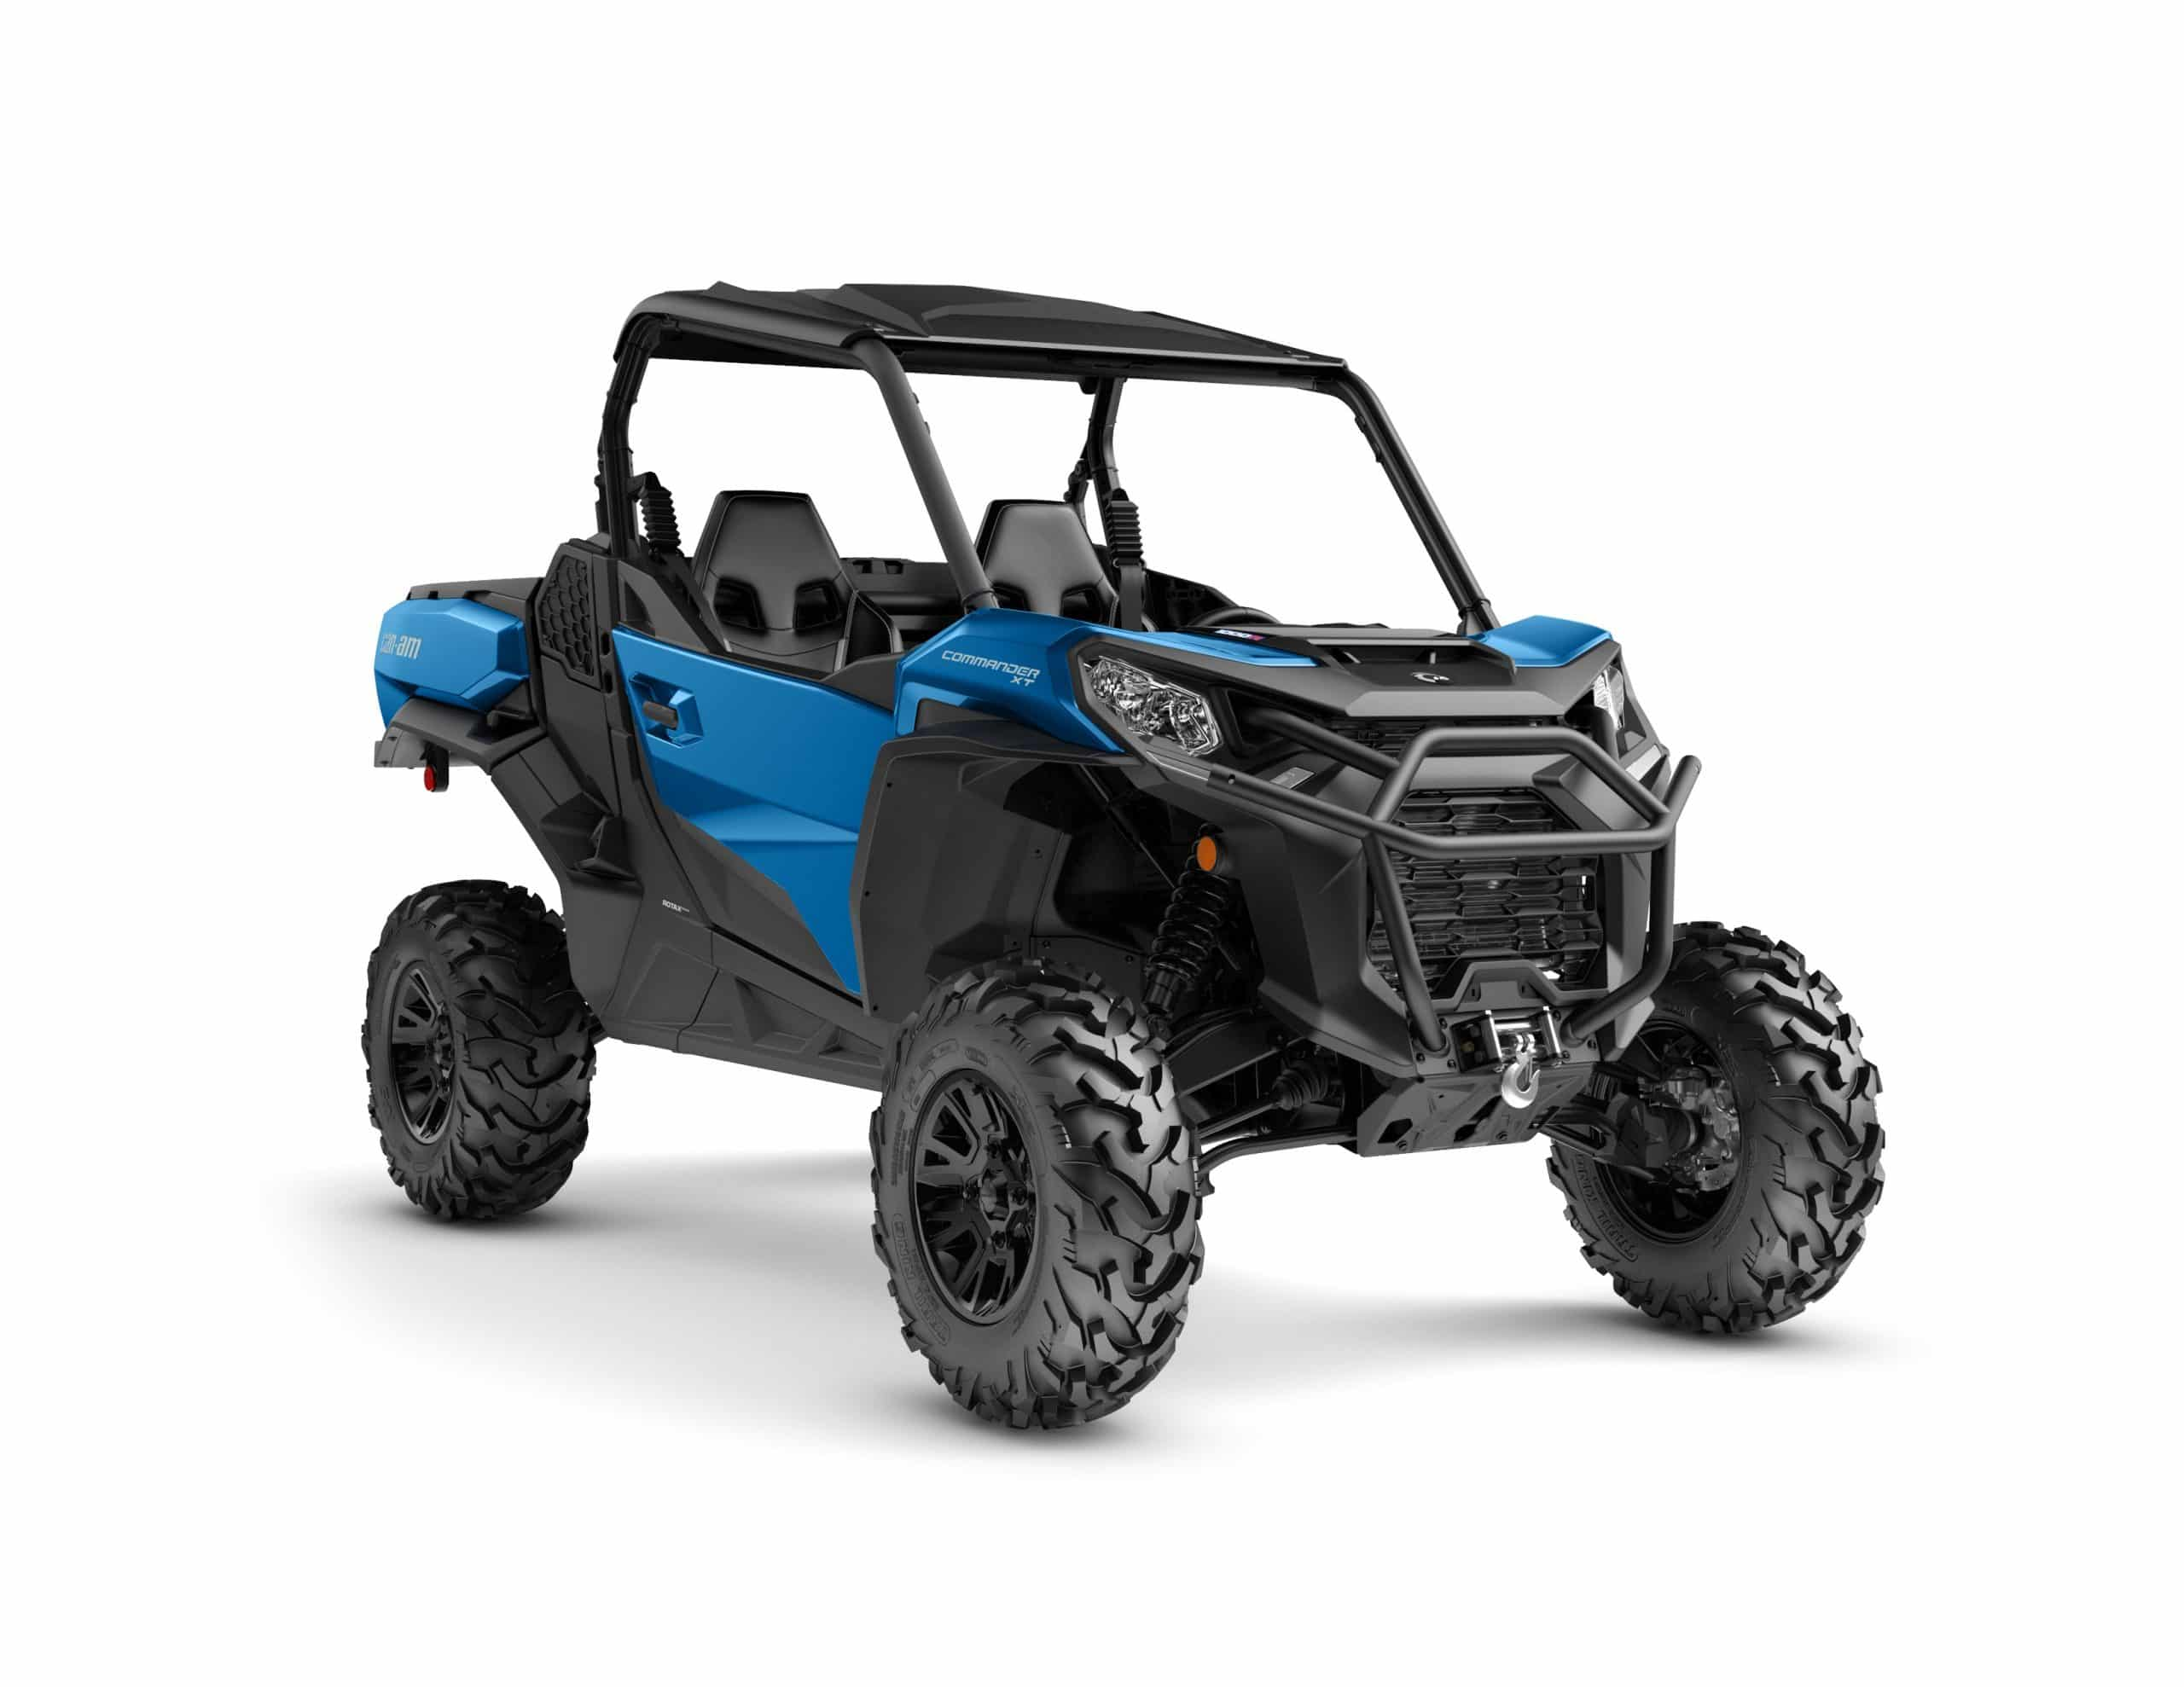 Commander XT 1000R Oxford Blue front scaled